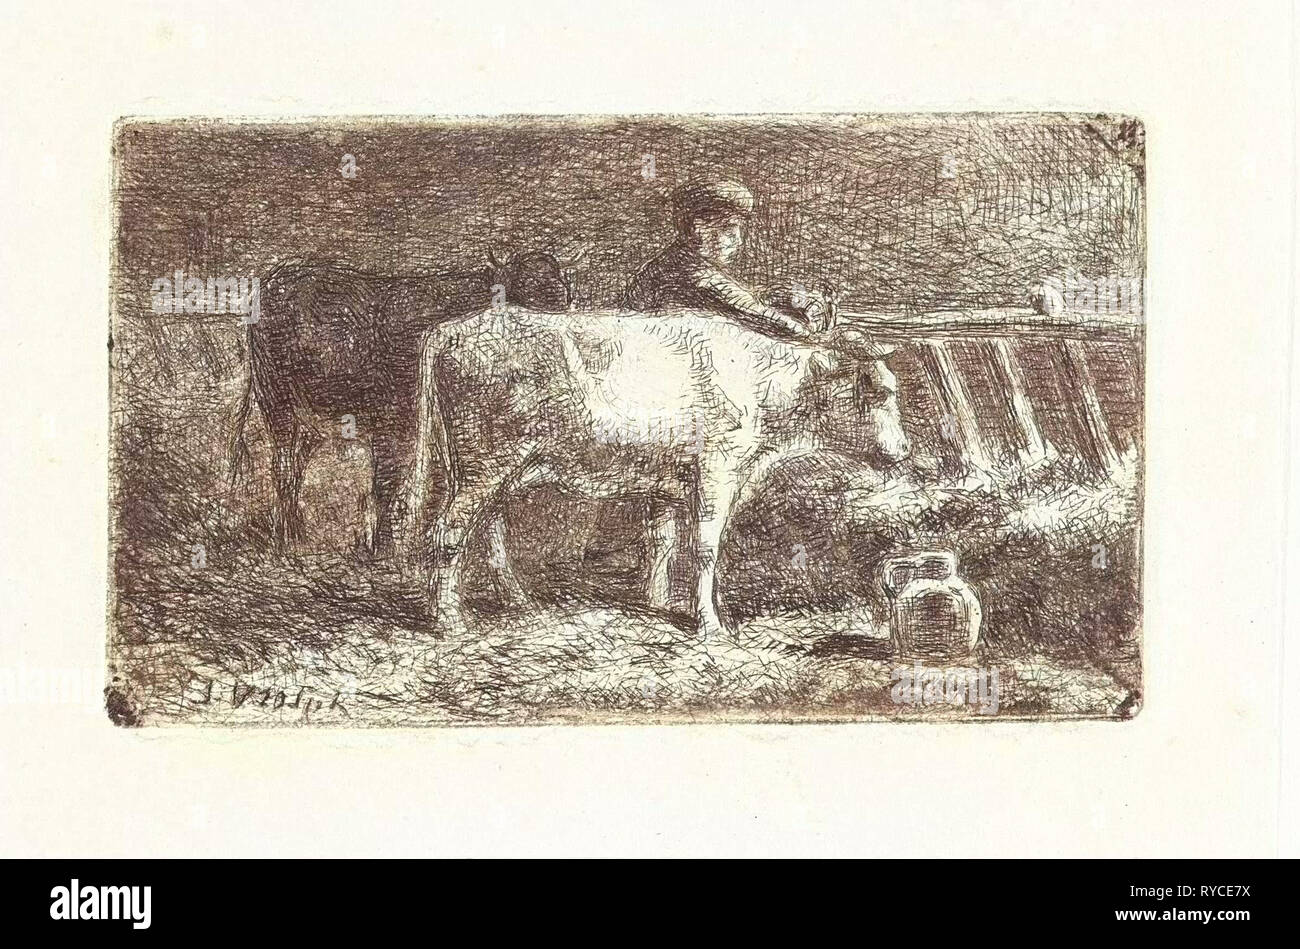 Farmer between two cows in a manger in a stable (small version), Jan Vrolijk, 1860 - 1894 - Stock Image